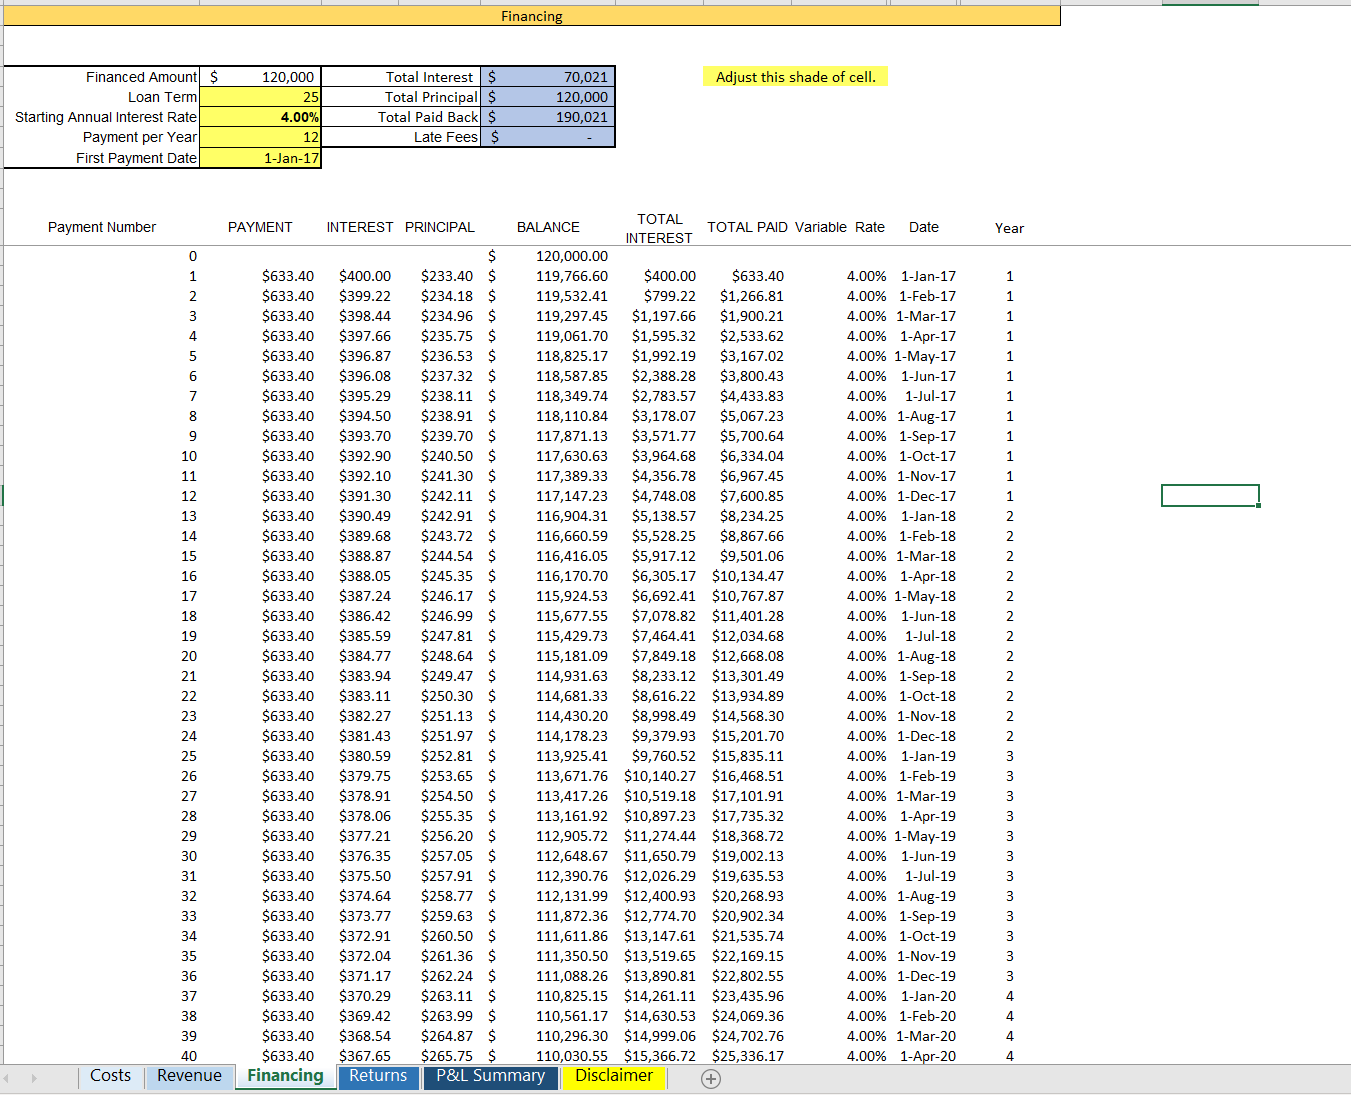 Dry Cleaning Business DCF Analysis